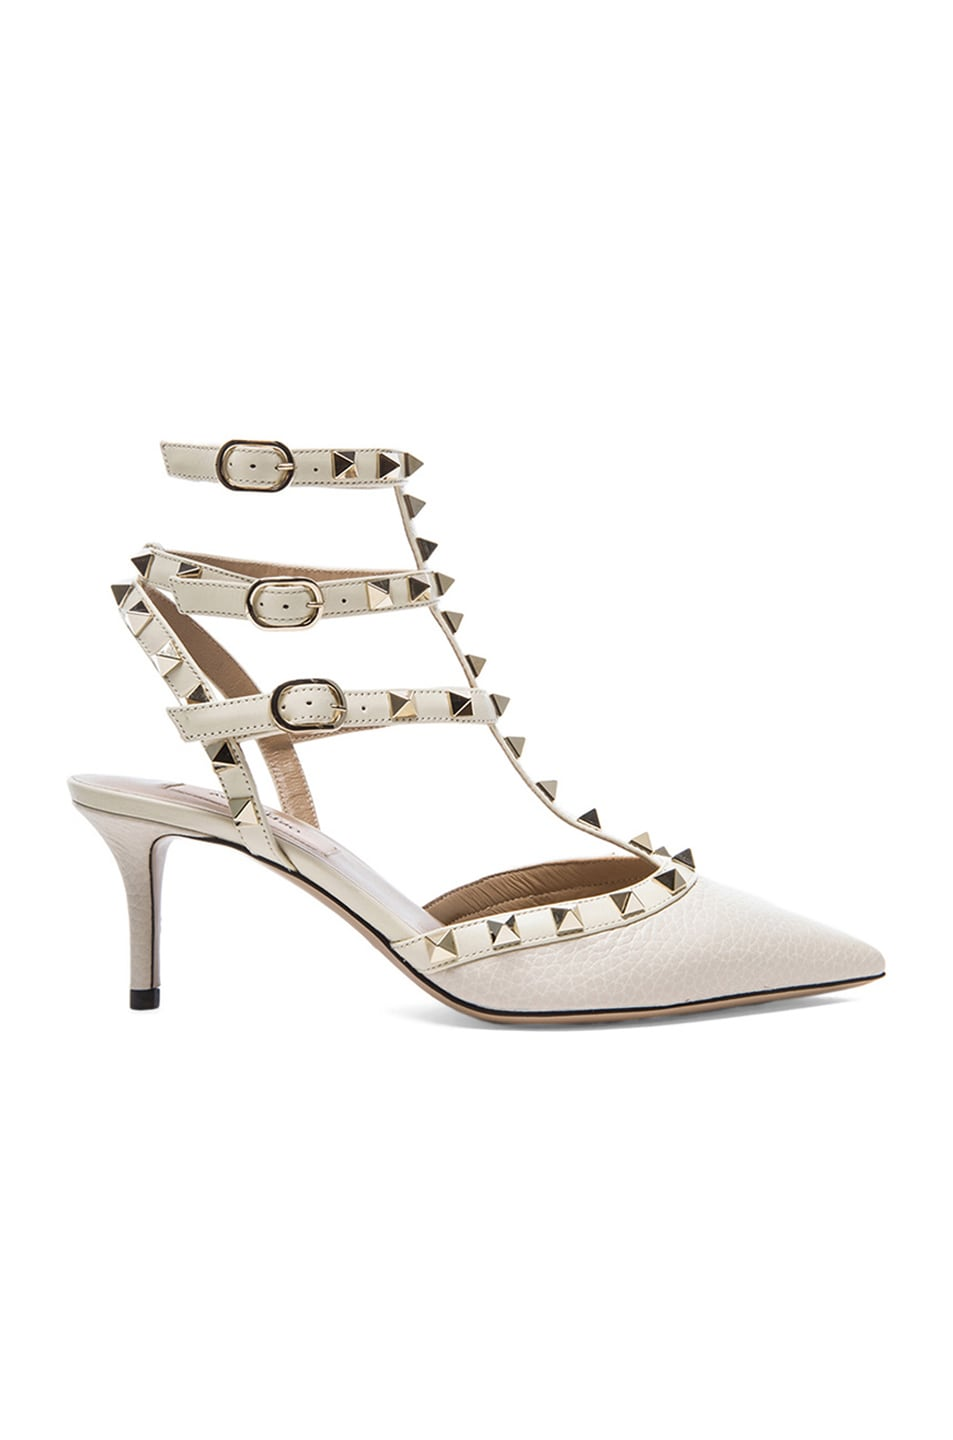 c4ea2ae330 Image 1 of Valentino Rockstud Leather Slingbacks T.65 in Light Ivory